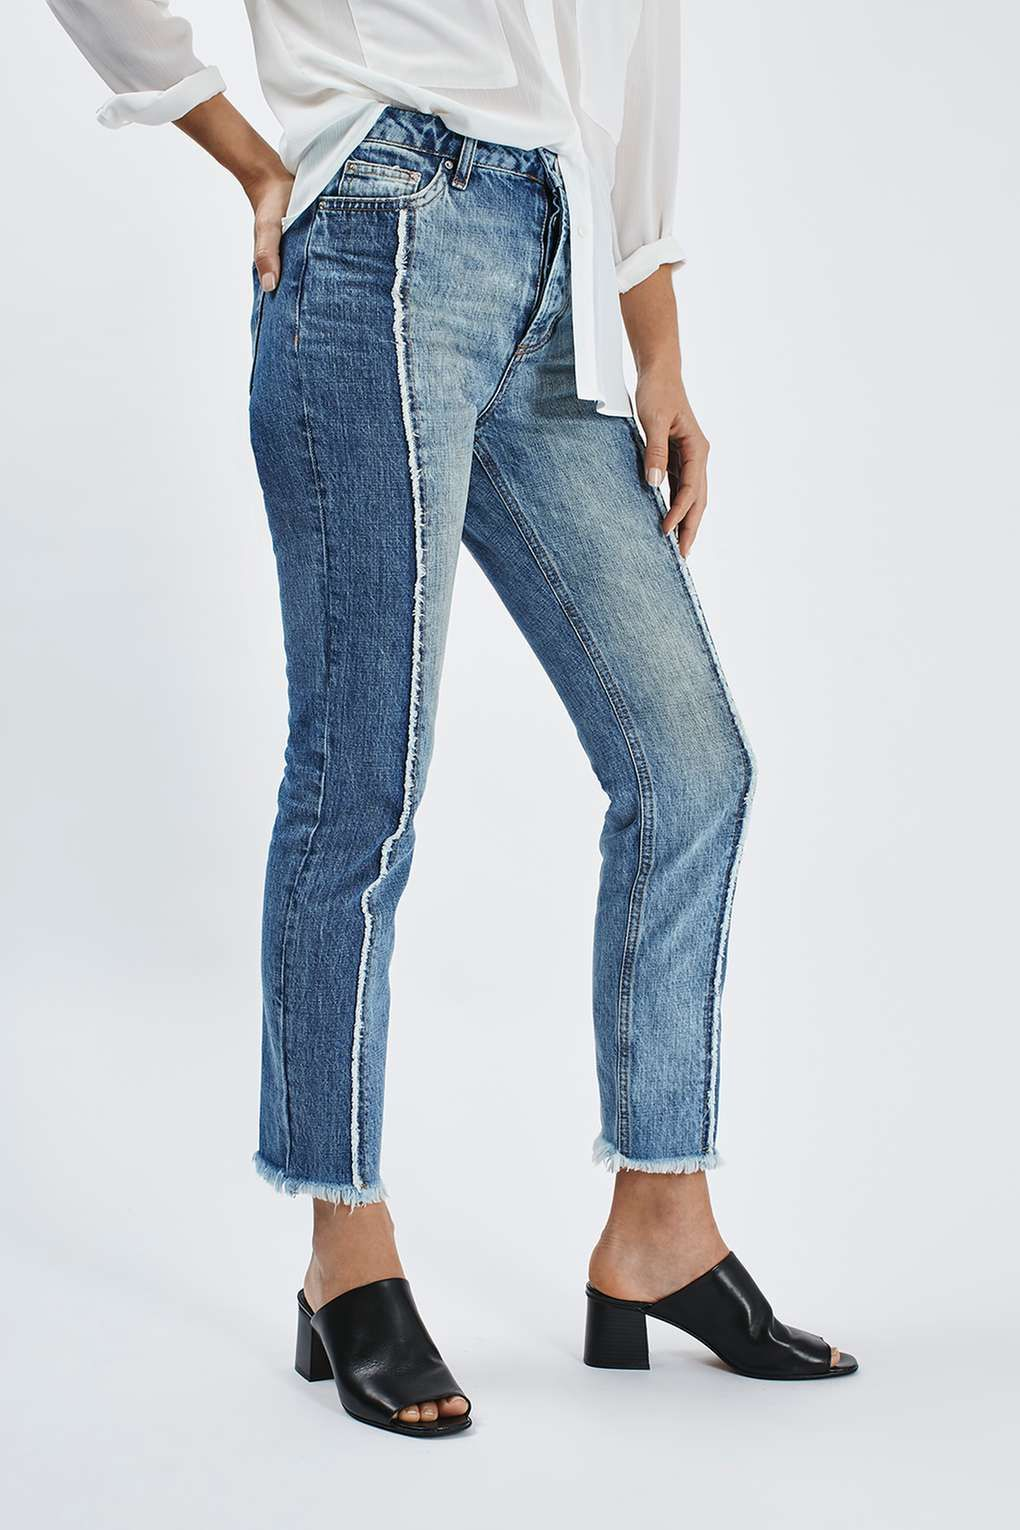 83f24444f757 MOTO Panel Straight Leg Jeans - Topshop Two Toned Jeans